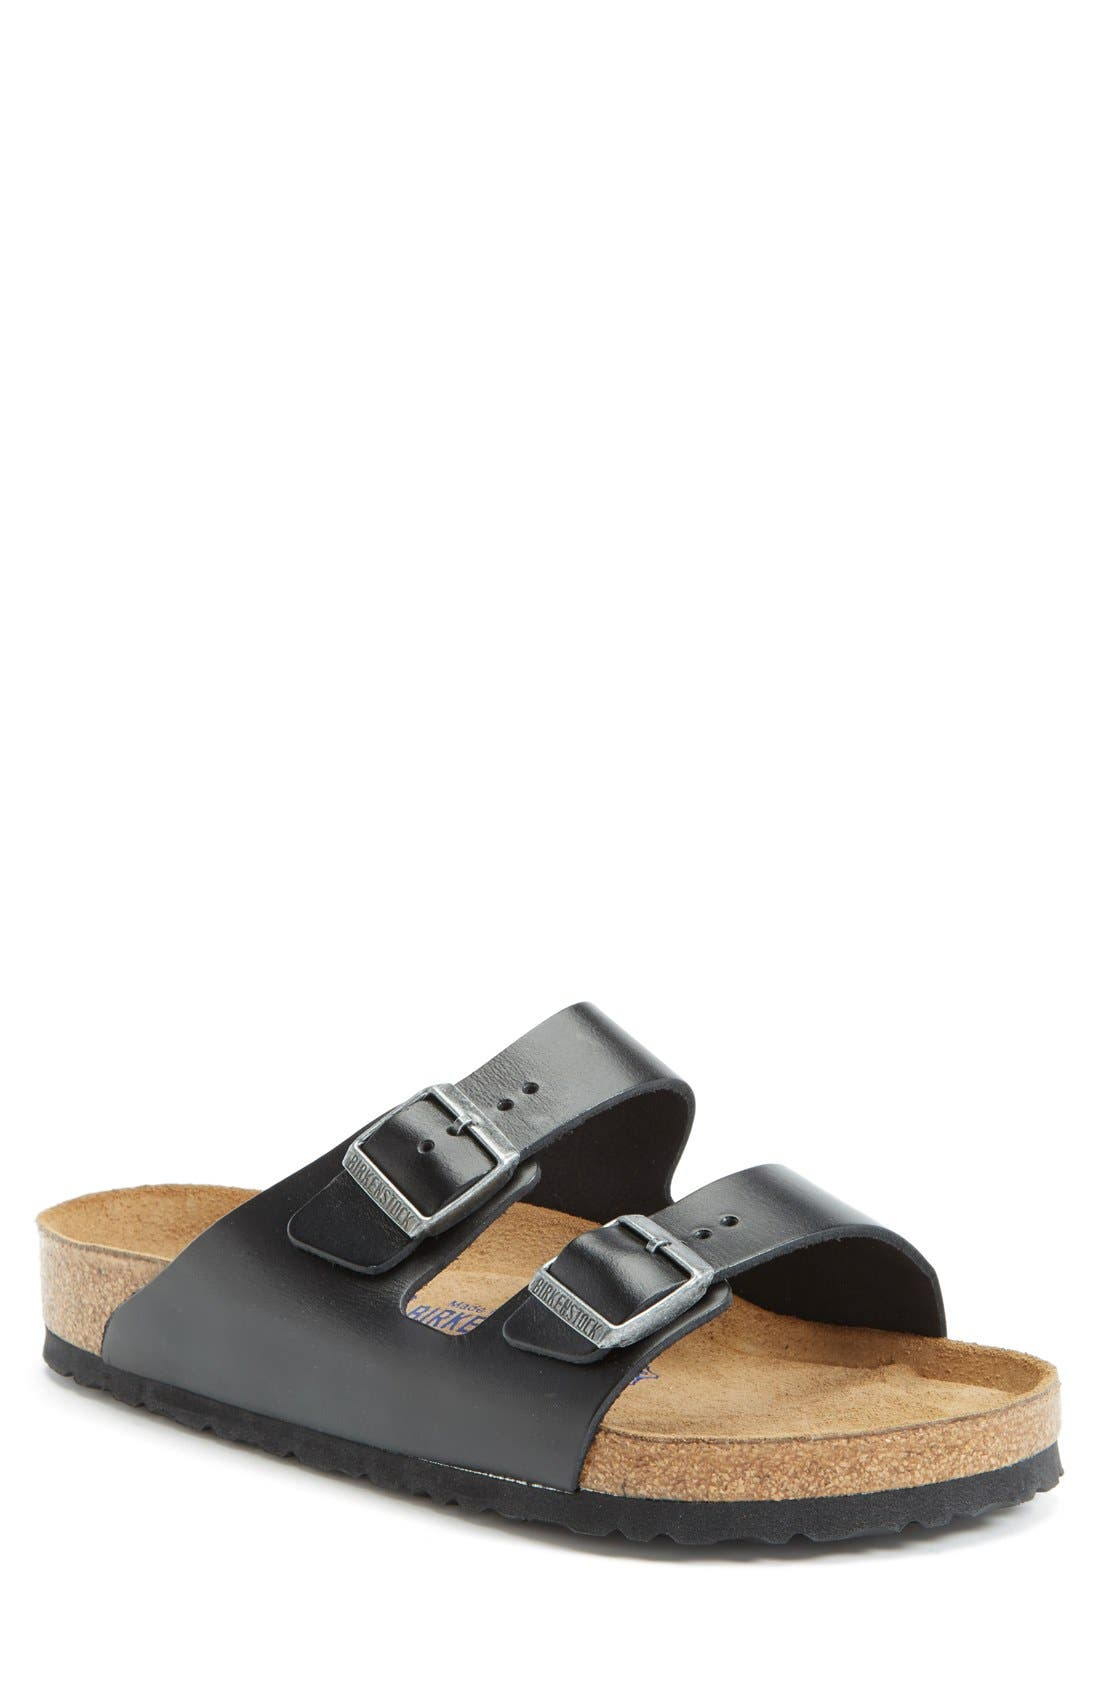 'Arizona Soft' Sandal, Main, color, BLACK